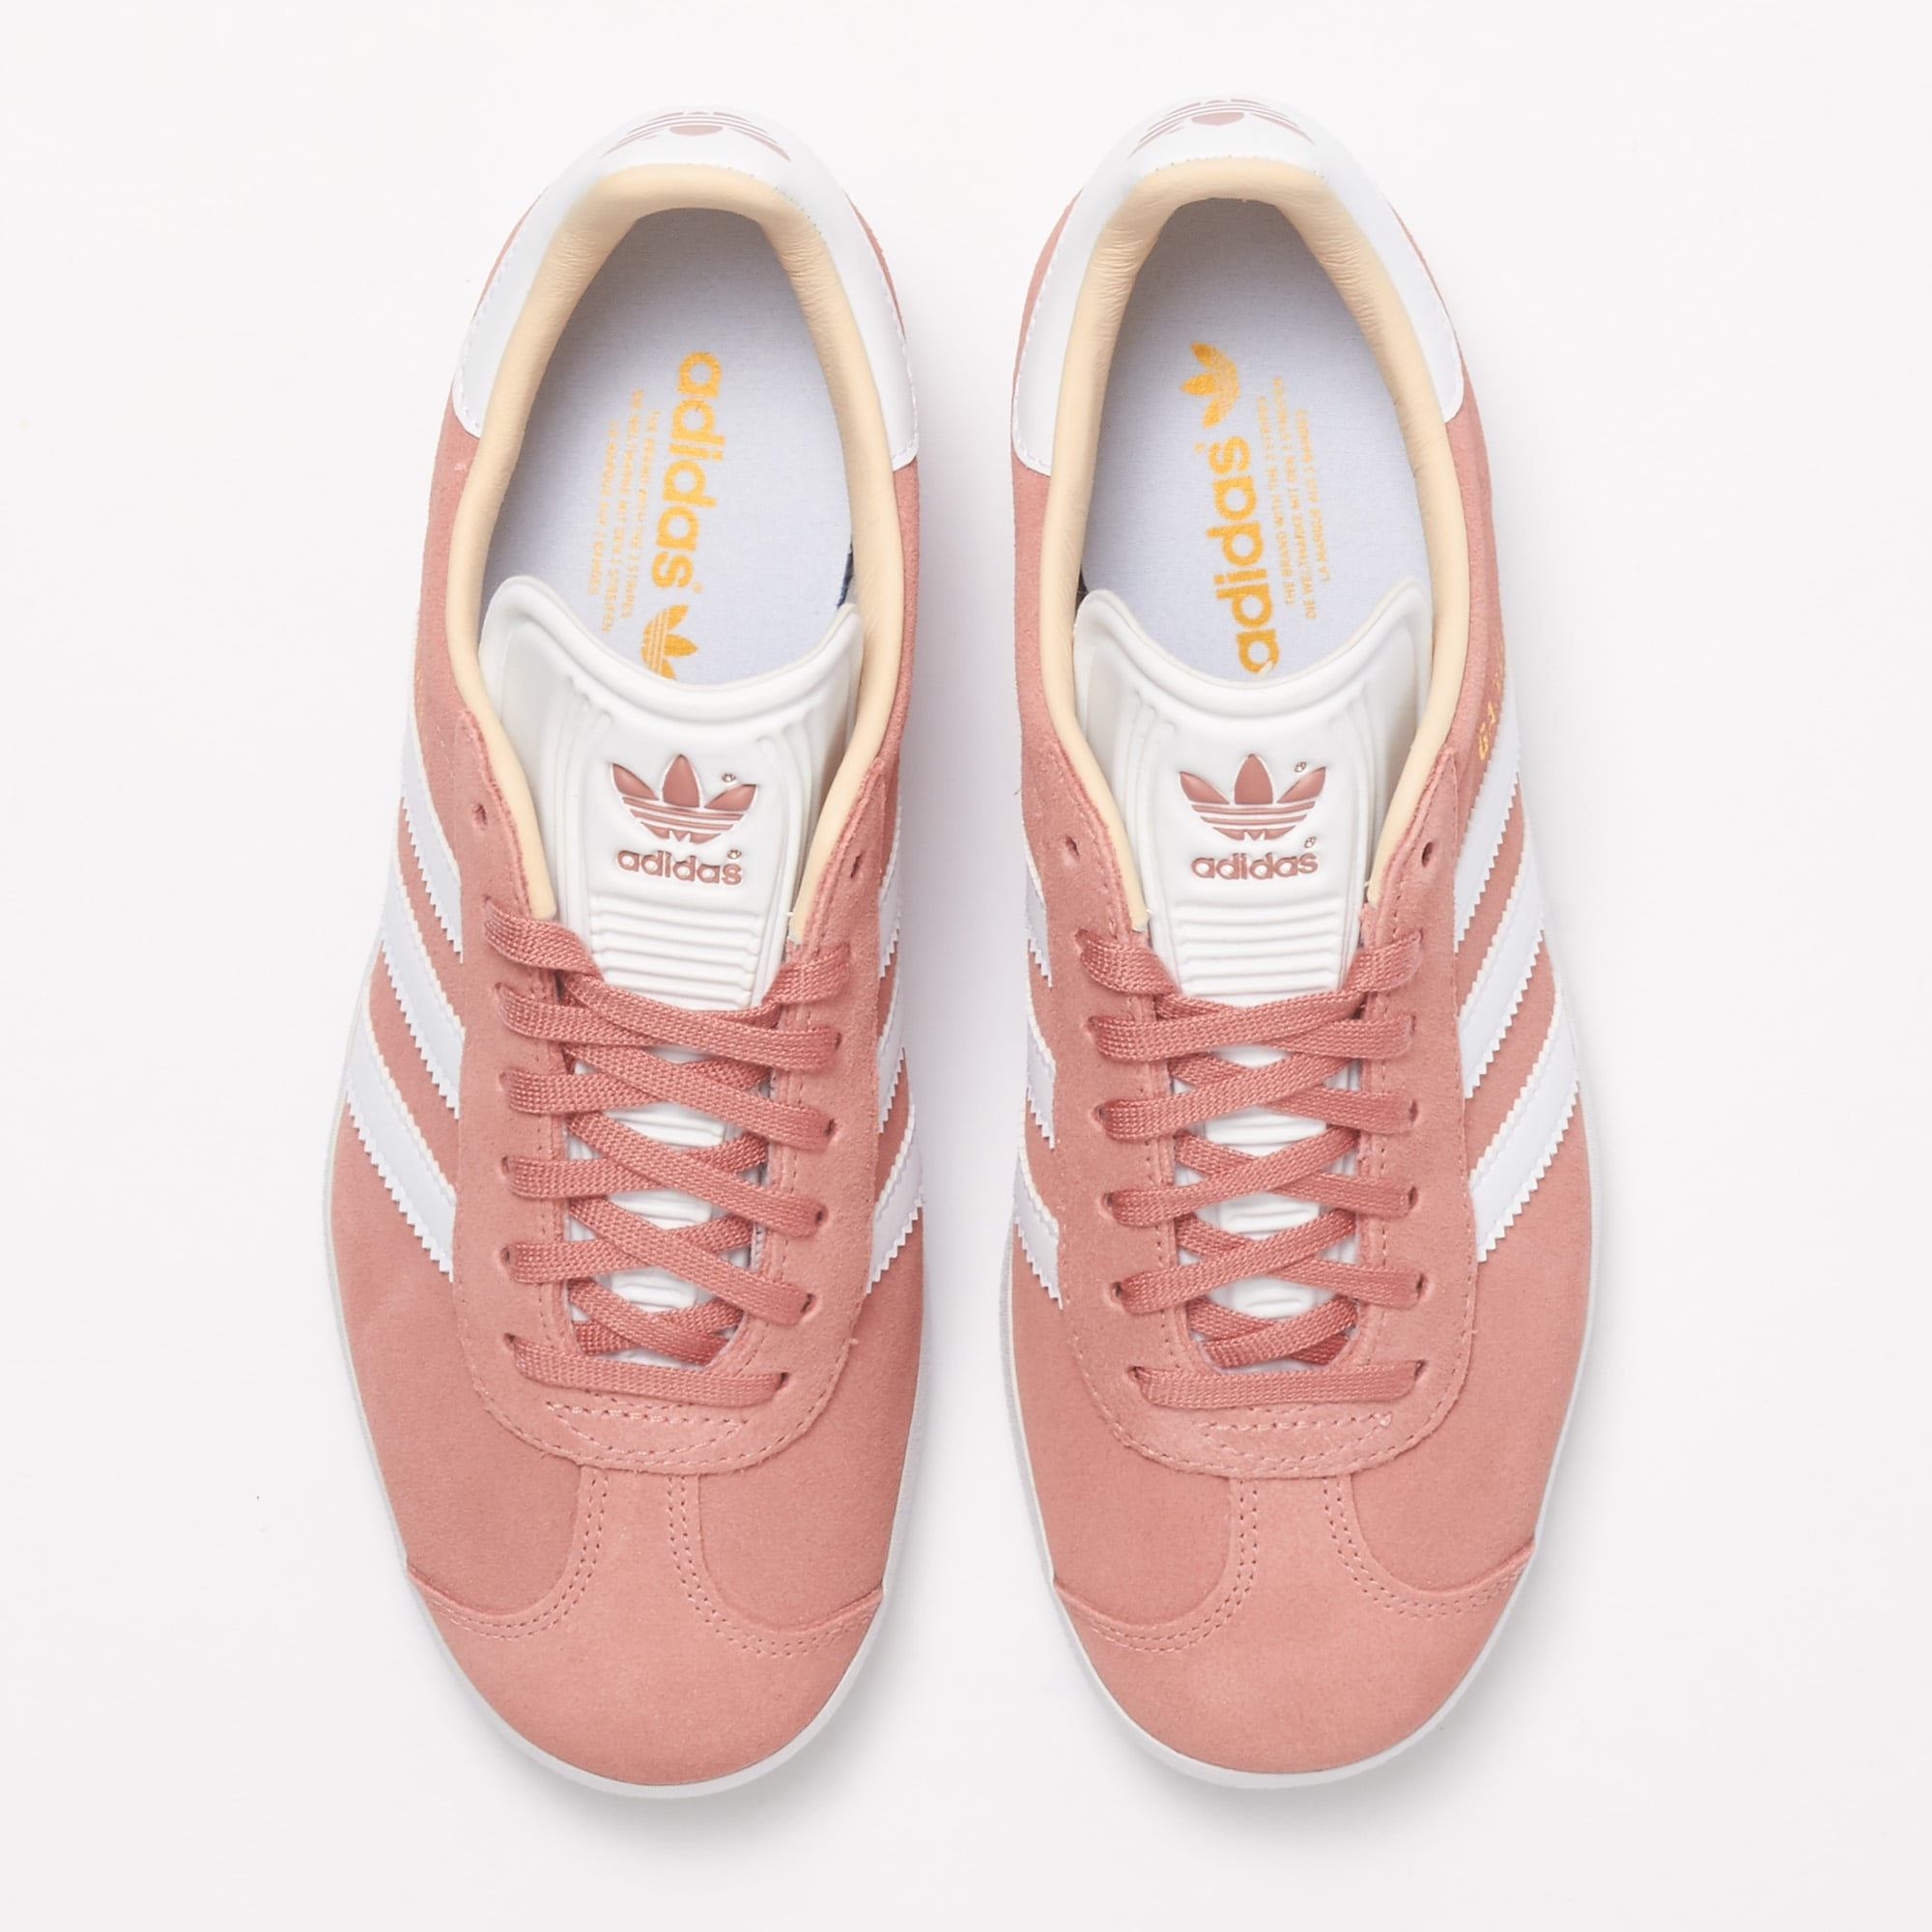 0f65a861a66 Adidas Originals Womens Gazelle Trainers